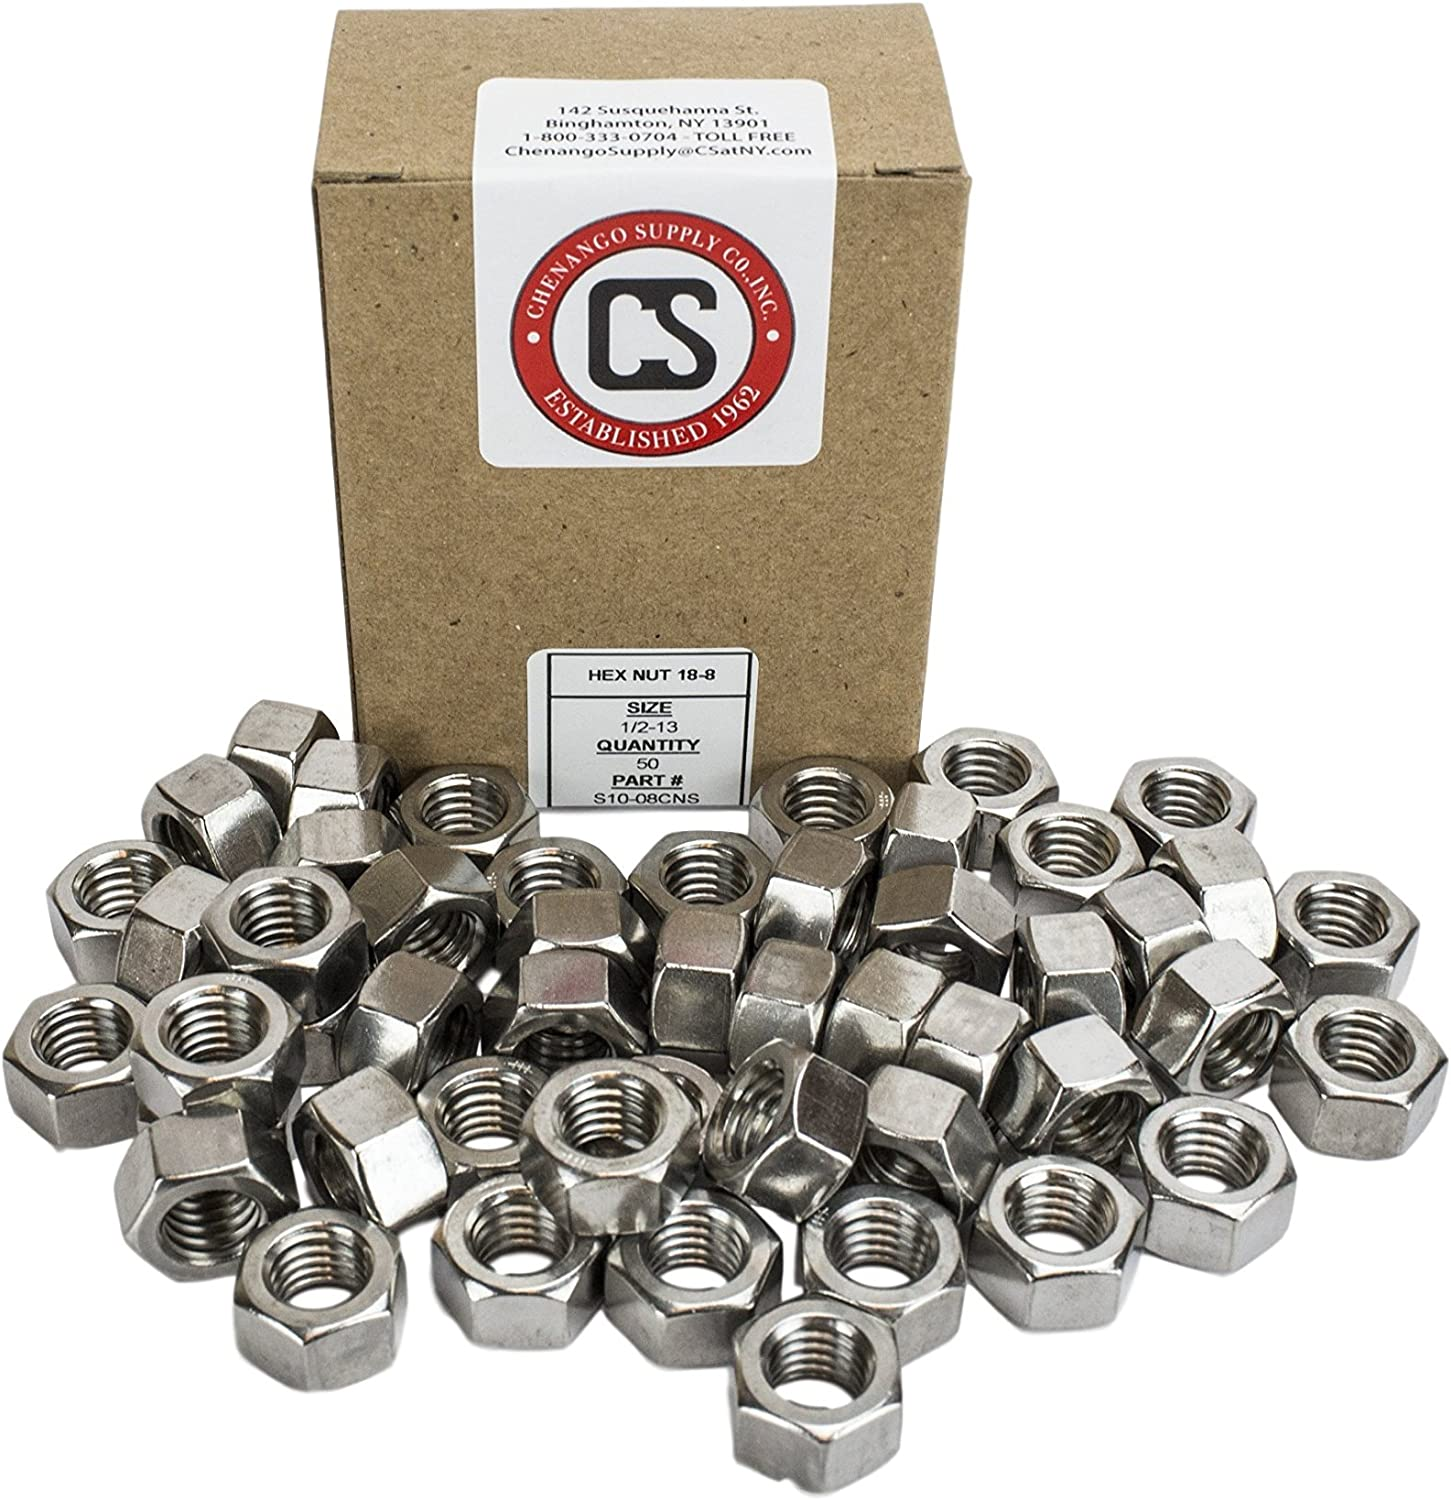 1//2-13 x 2 Stainless 1//2-13 x 2 Hex Head Bolts 3//4 to 5 Lengths Available in Listing 304 Stainless Steel 25 Pieces